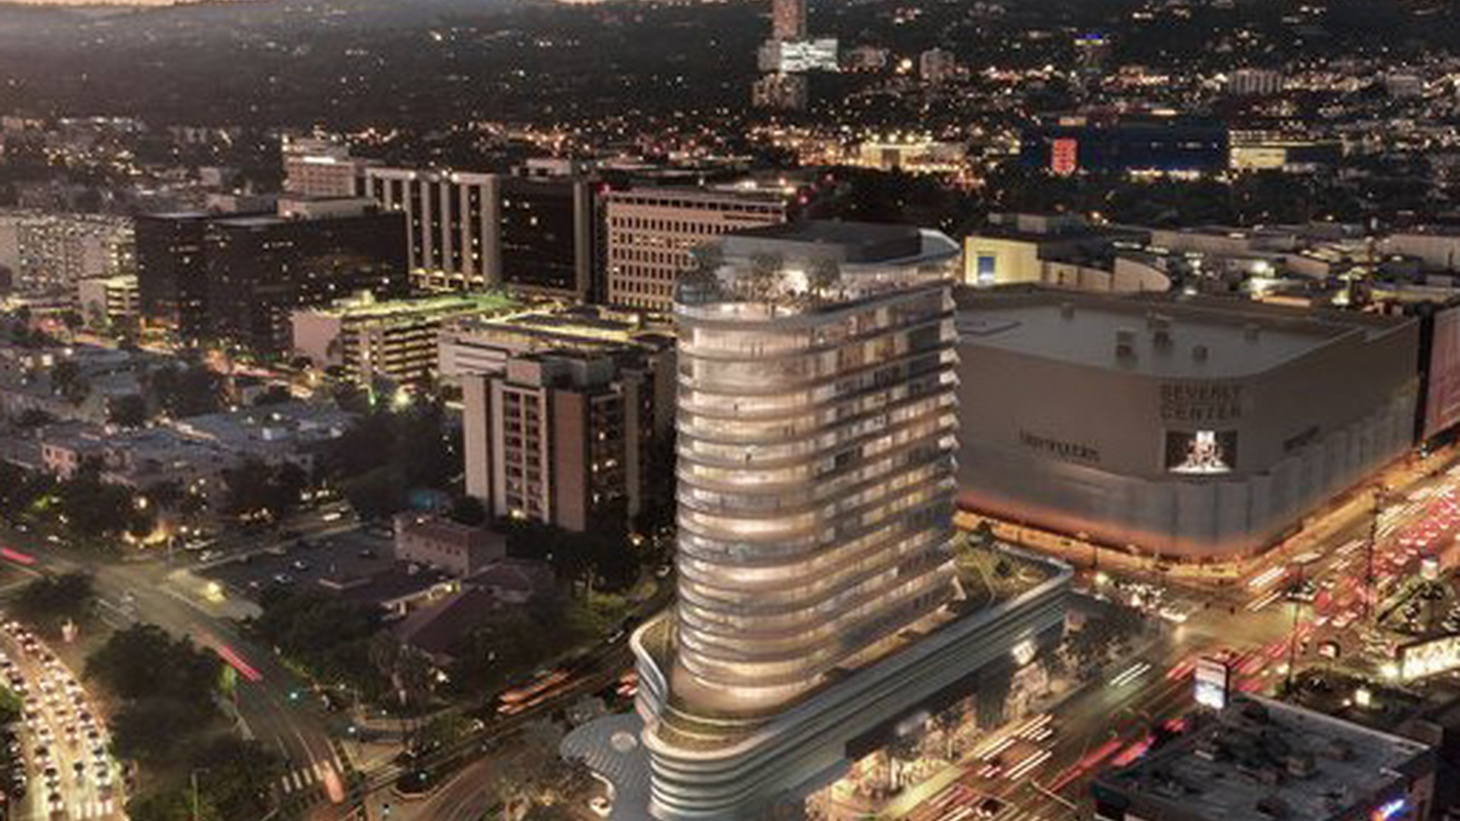 Los Angeles developer Rick Caruso's planned 145-unit luxury residential tower near the Beverly Center is moving forward, despite public opposition.